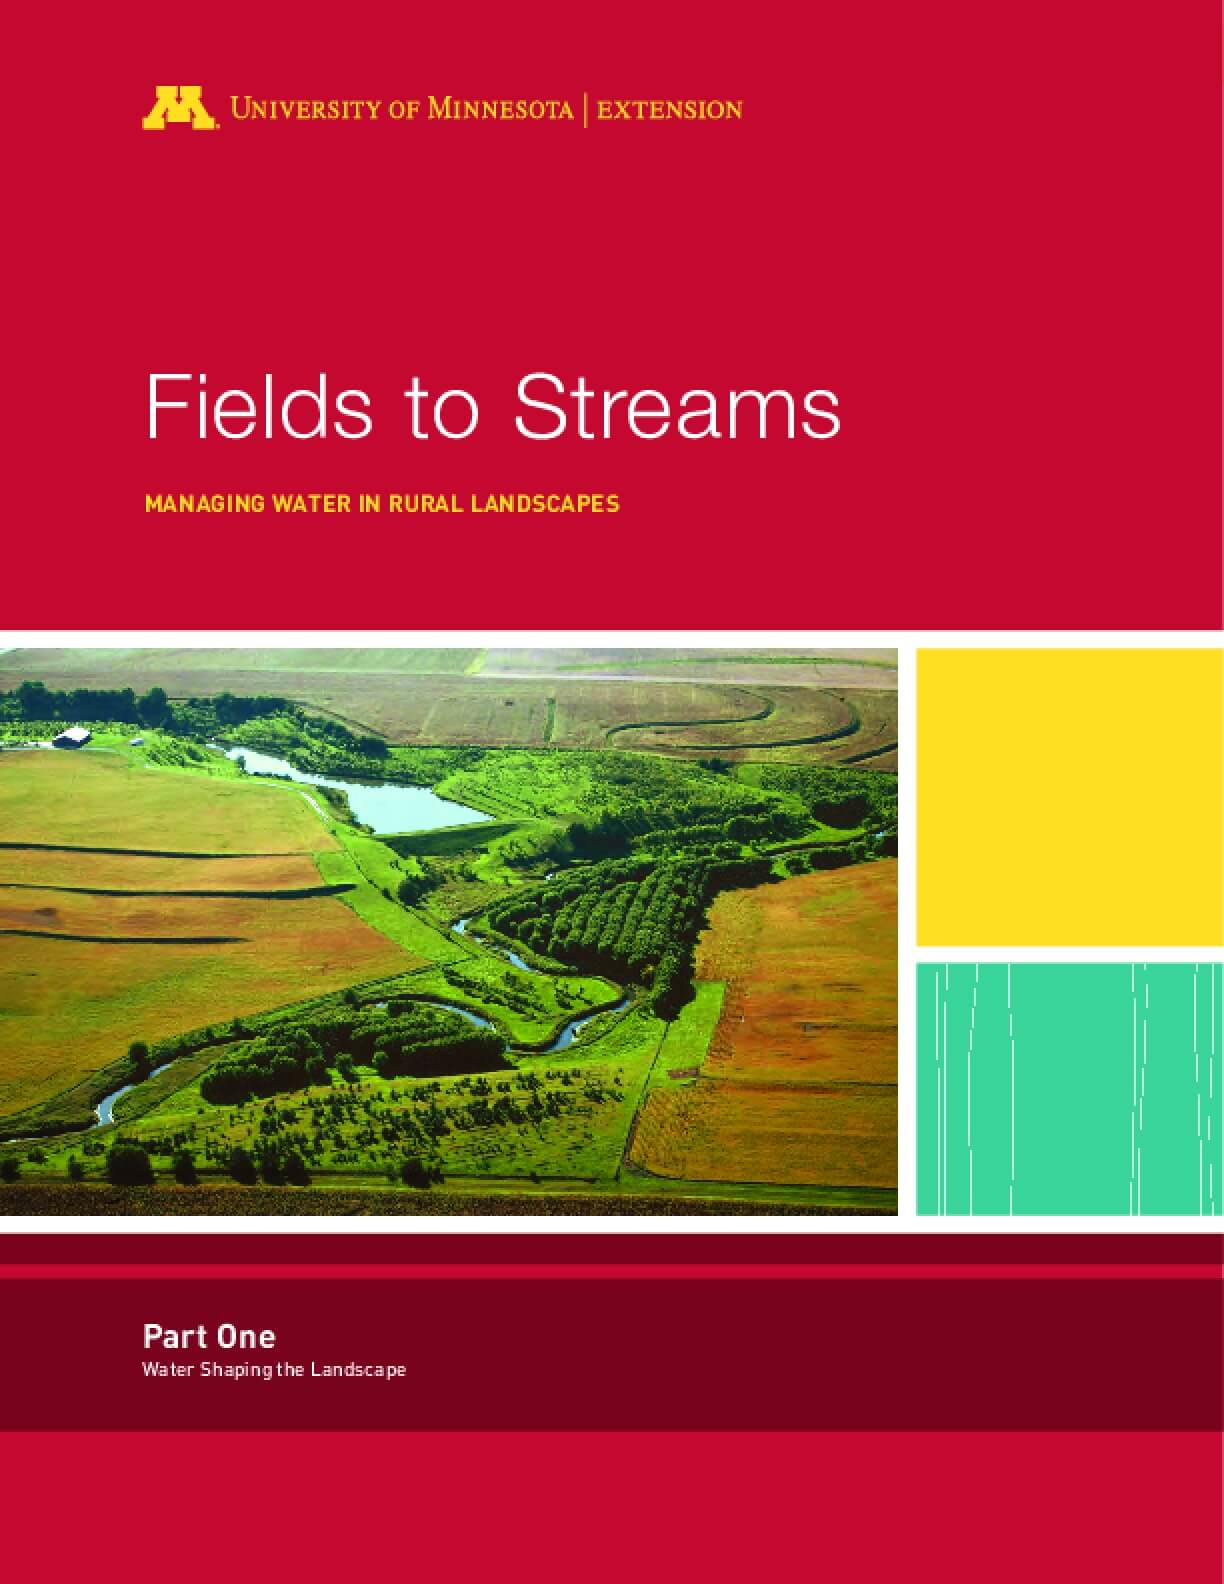 Fields to Streams: Managing Water in Rural Landscapes